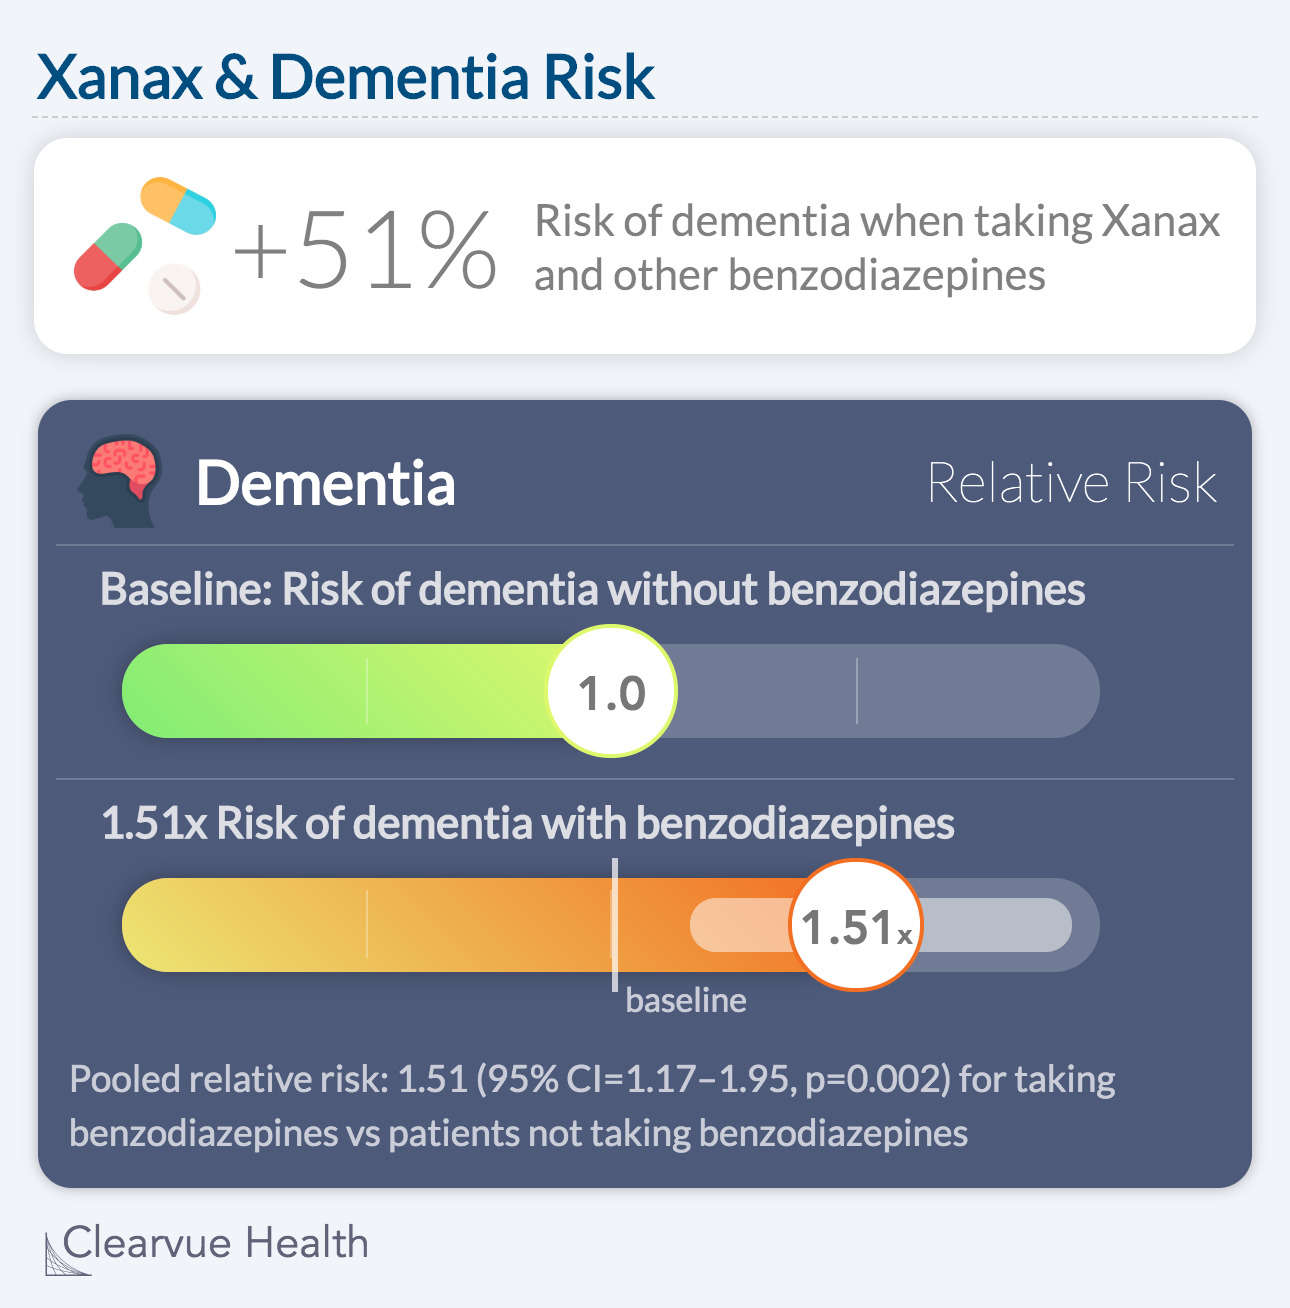 Xanax & Dementia Risk: +51% Risk of dementia when taking Xanax and other benzodiazepines